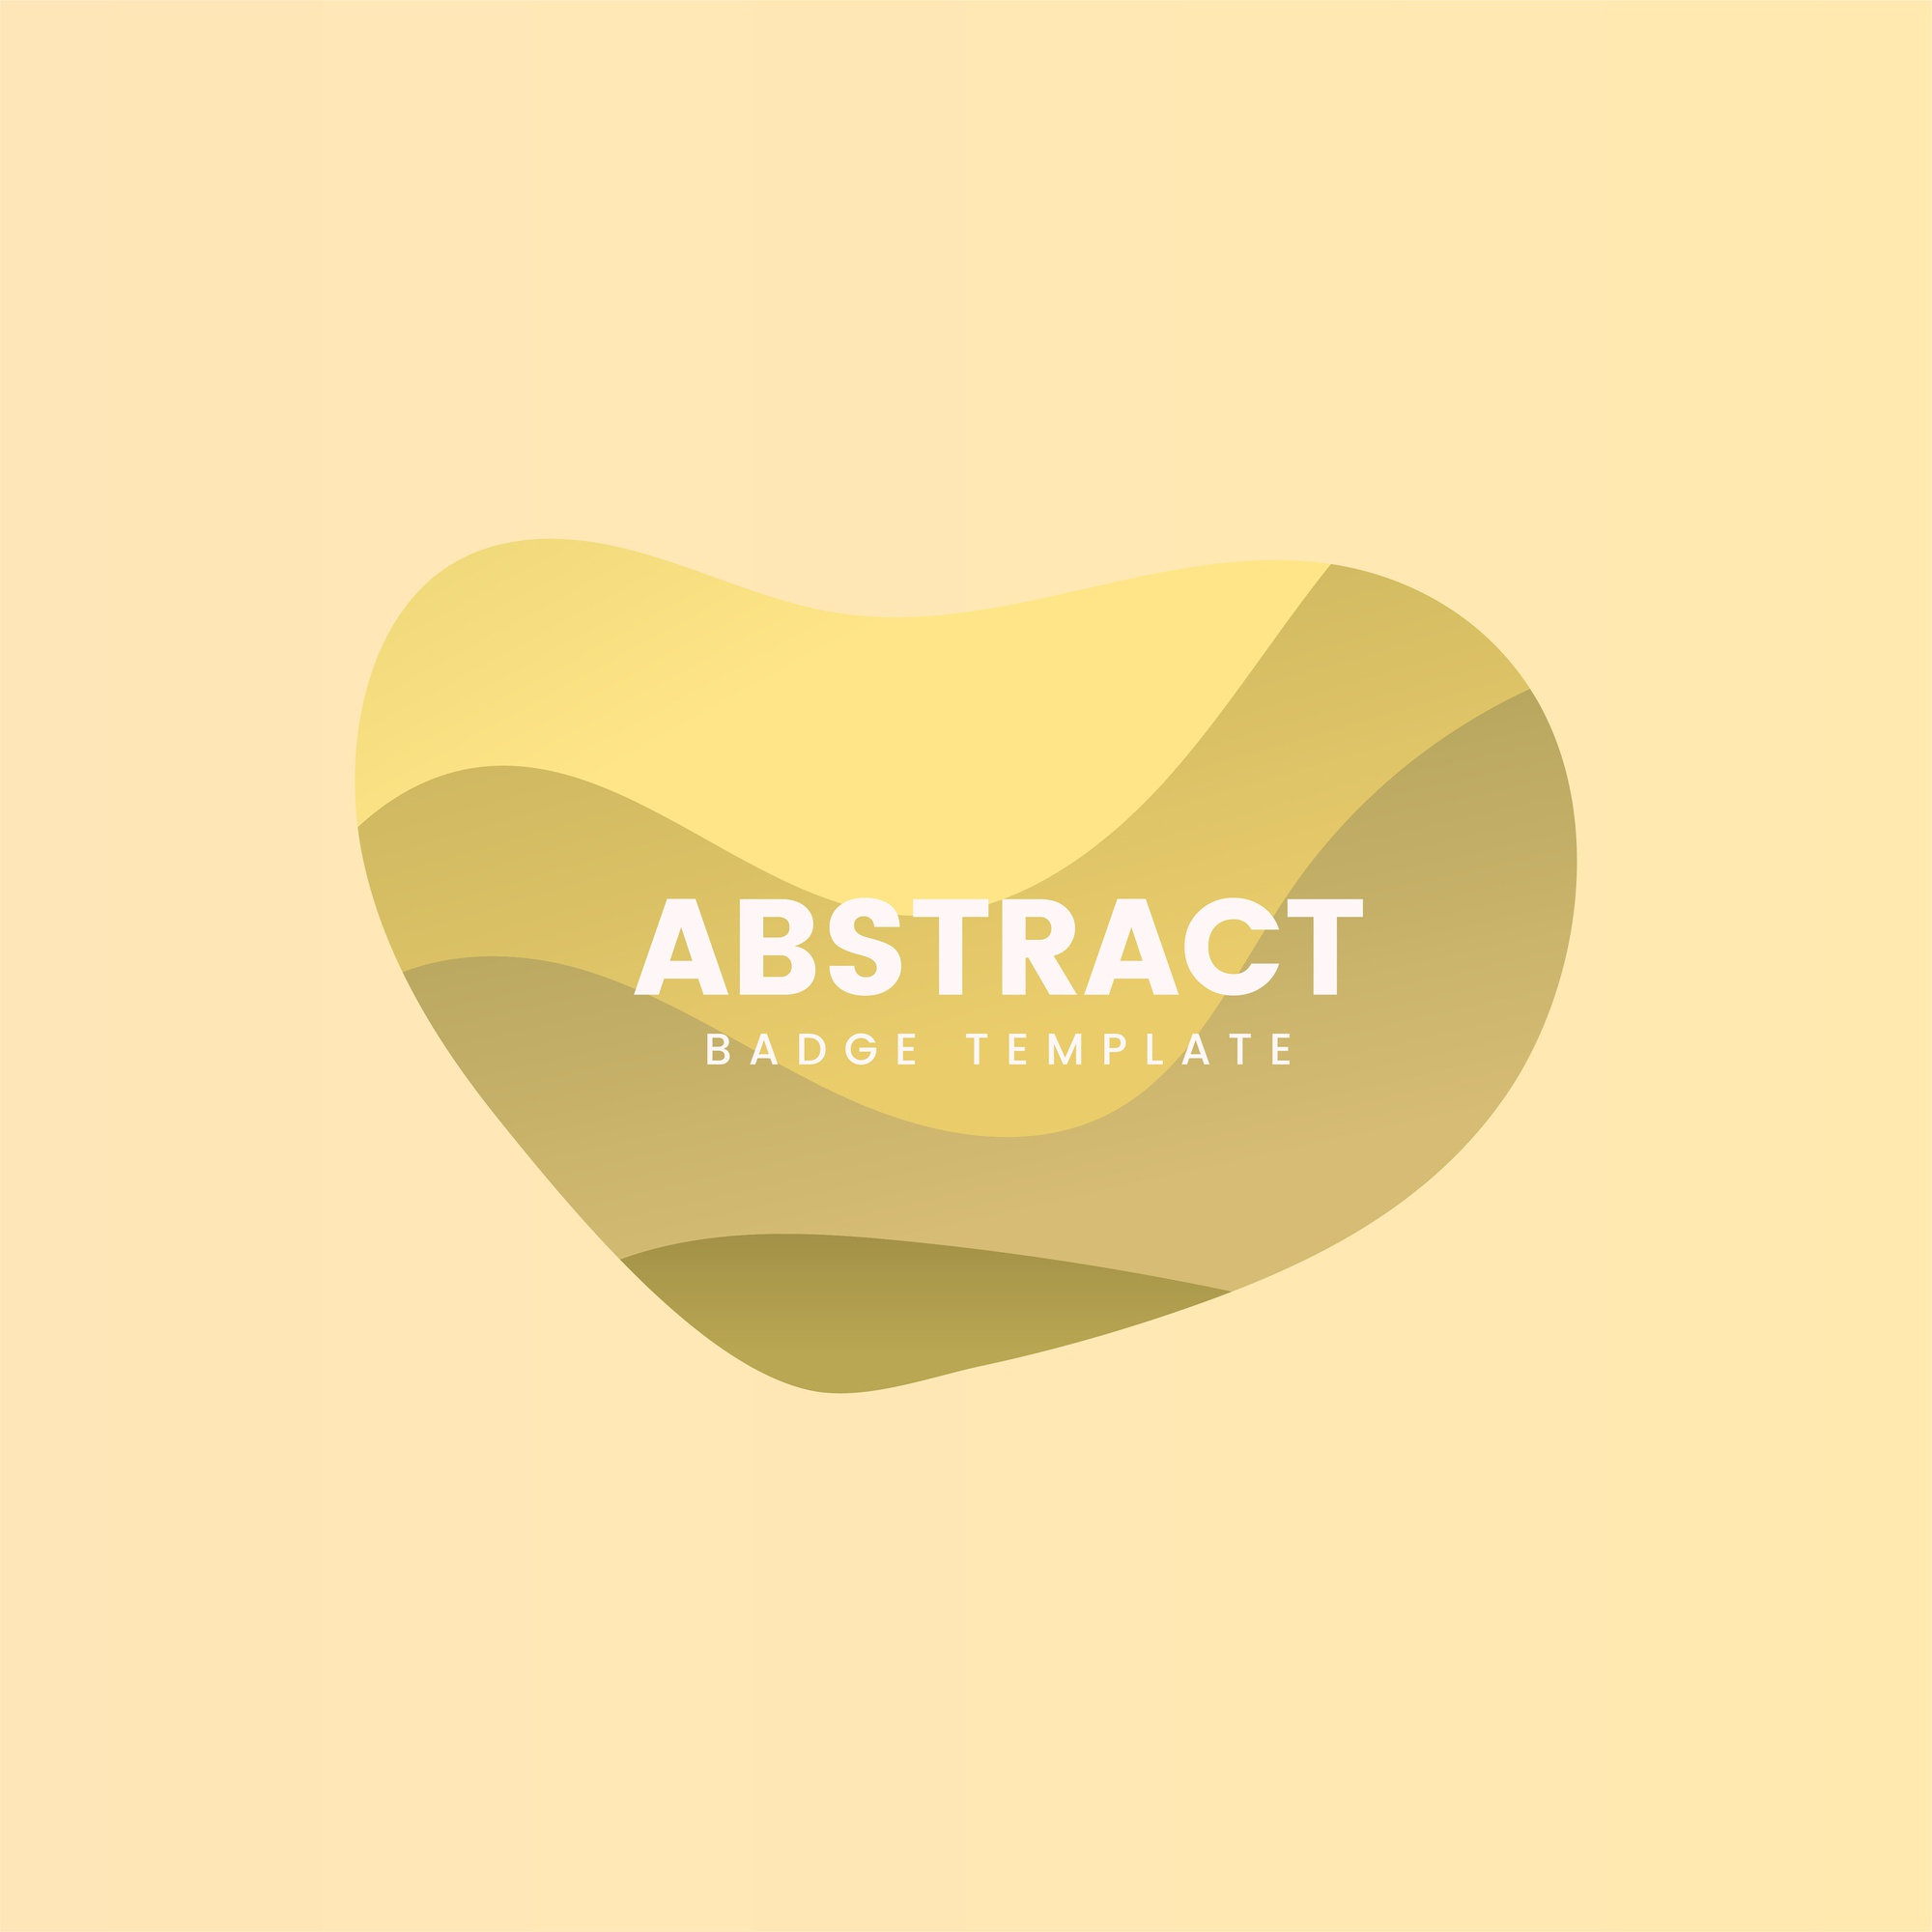 Abstract badge design in yellow